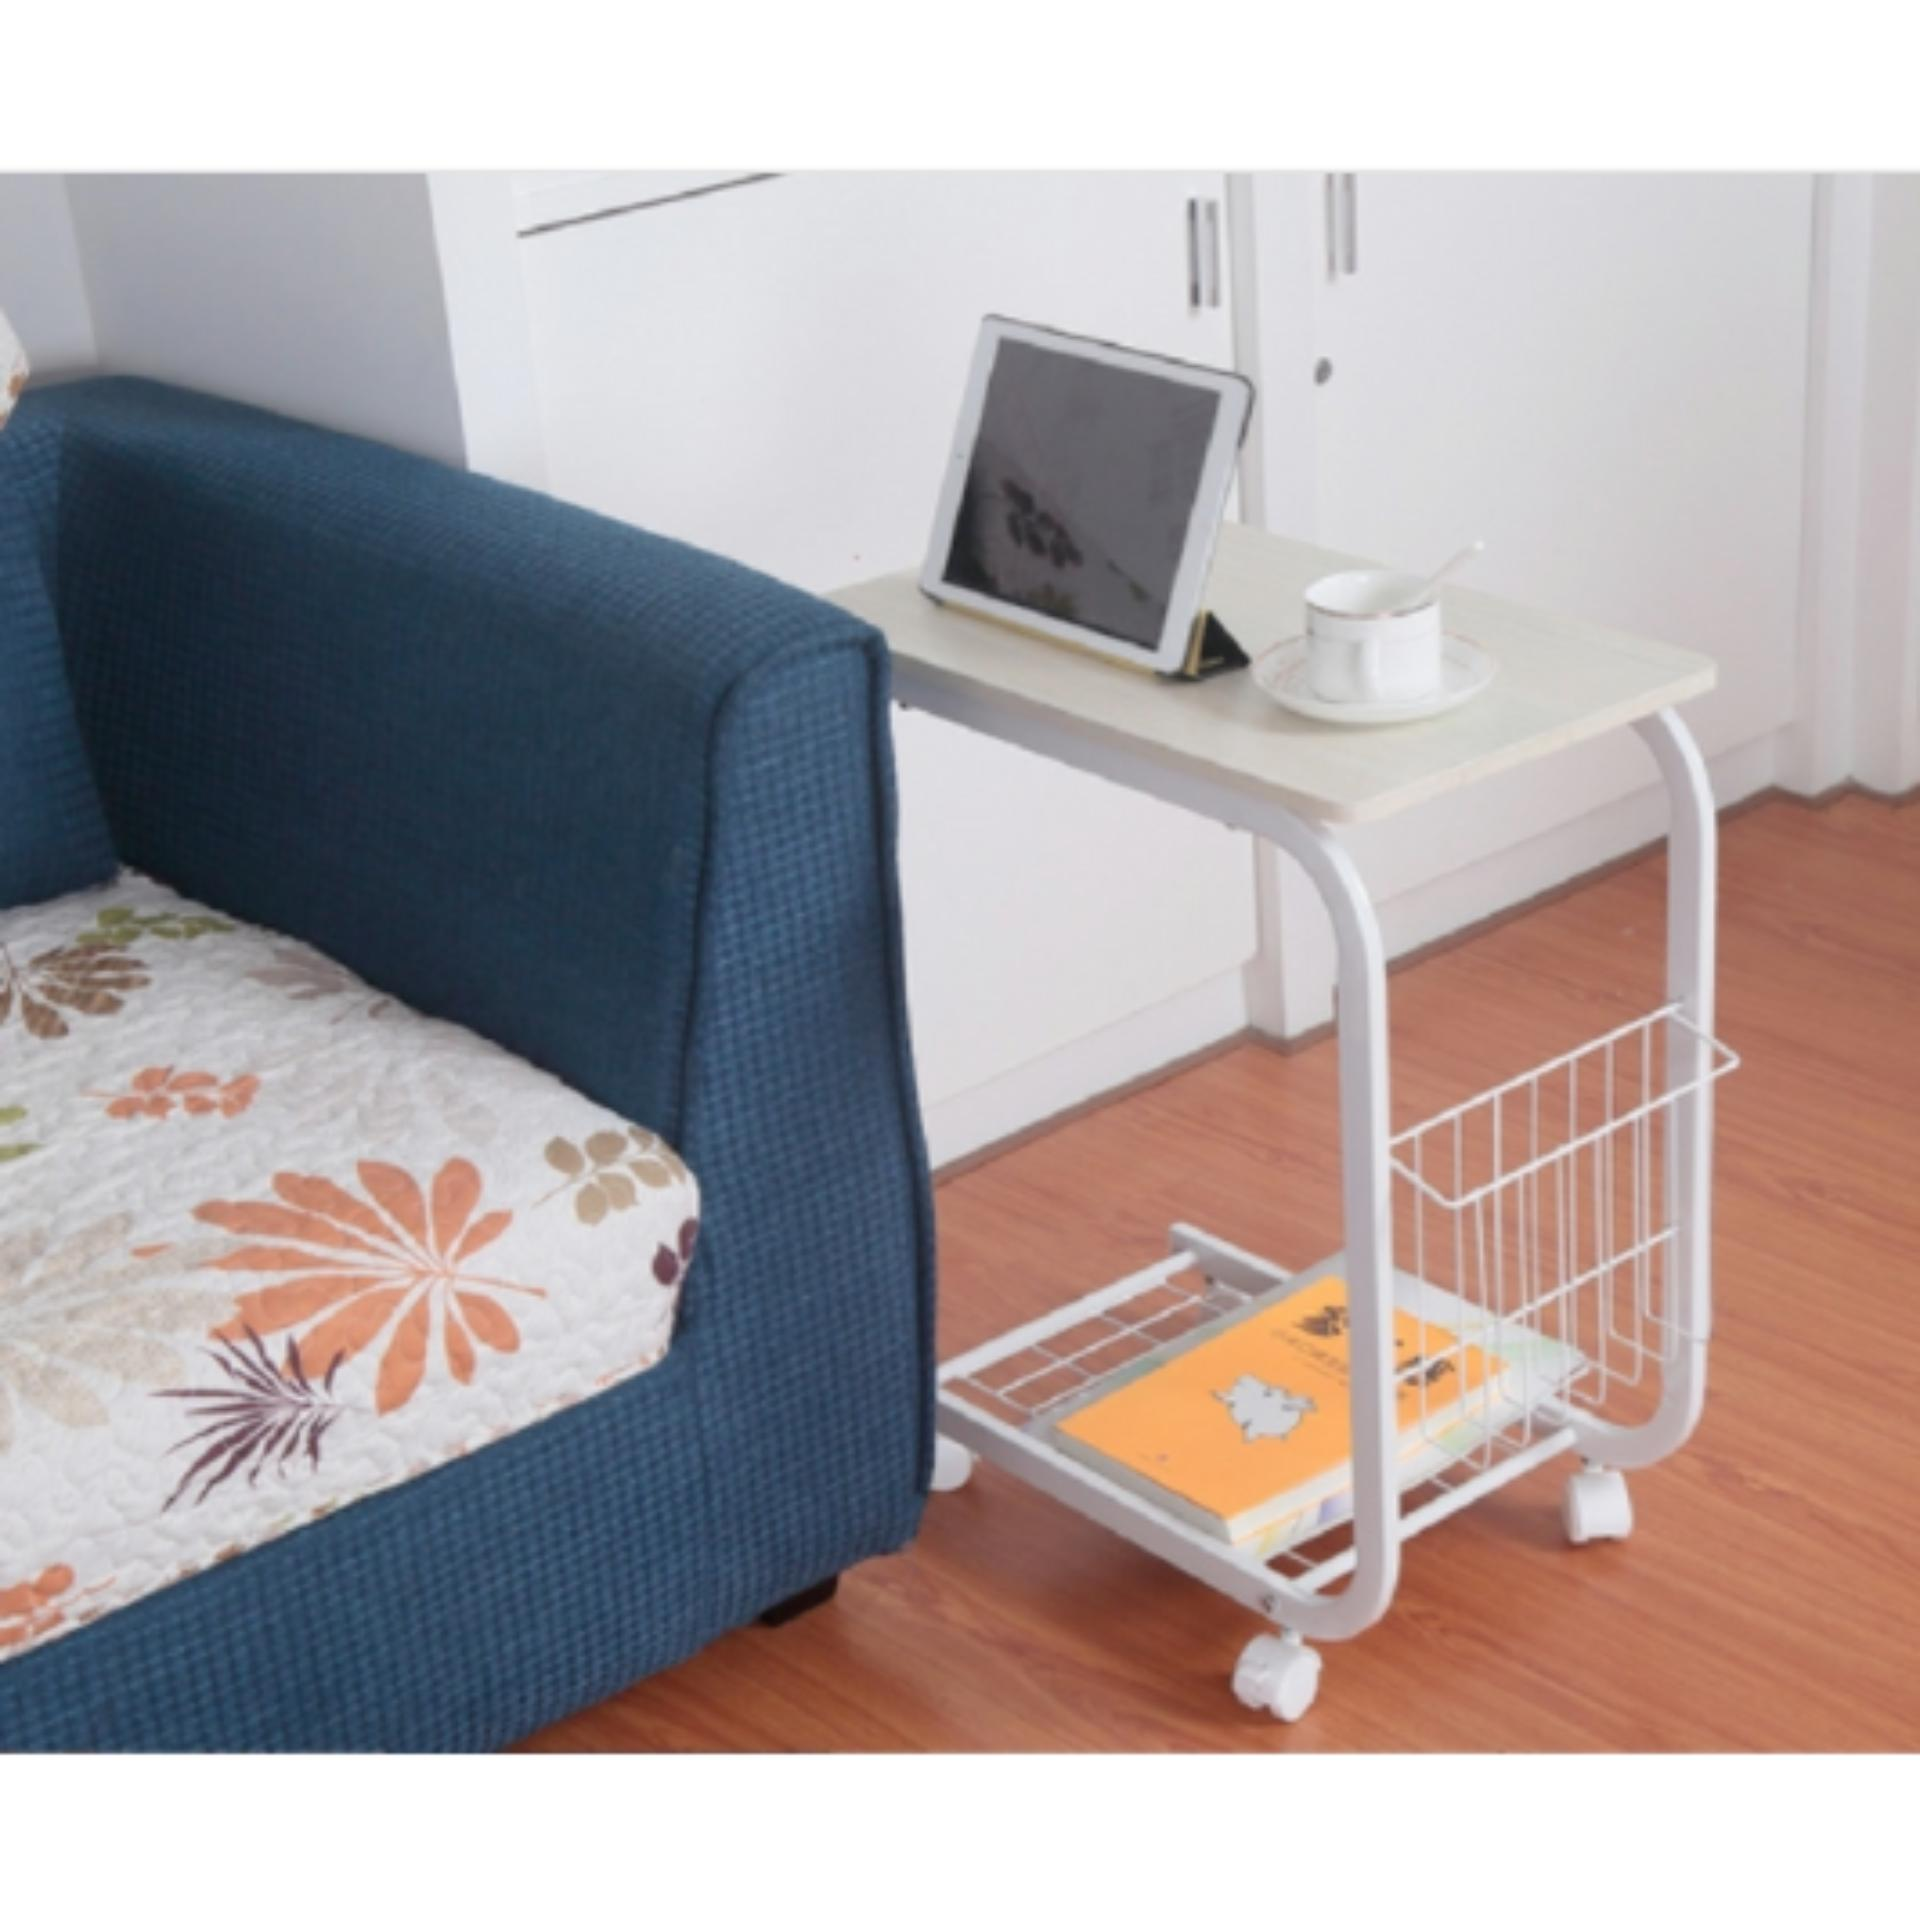 Marvelous Shoppy Uni Movable Coffee Table / Laptop / Study / Bed / Kitchen / Office |  Lazada Singapore Part 16